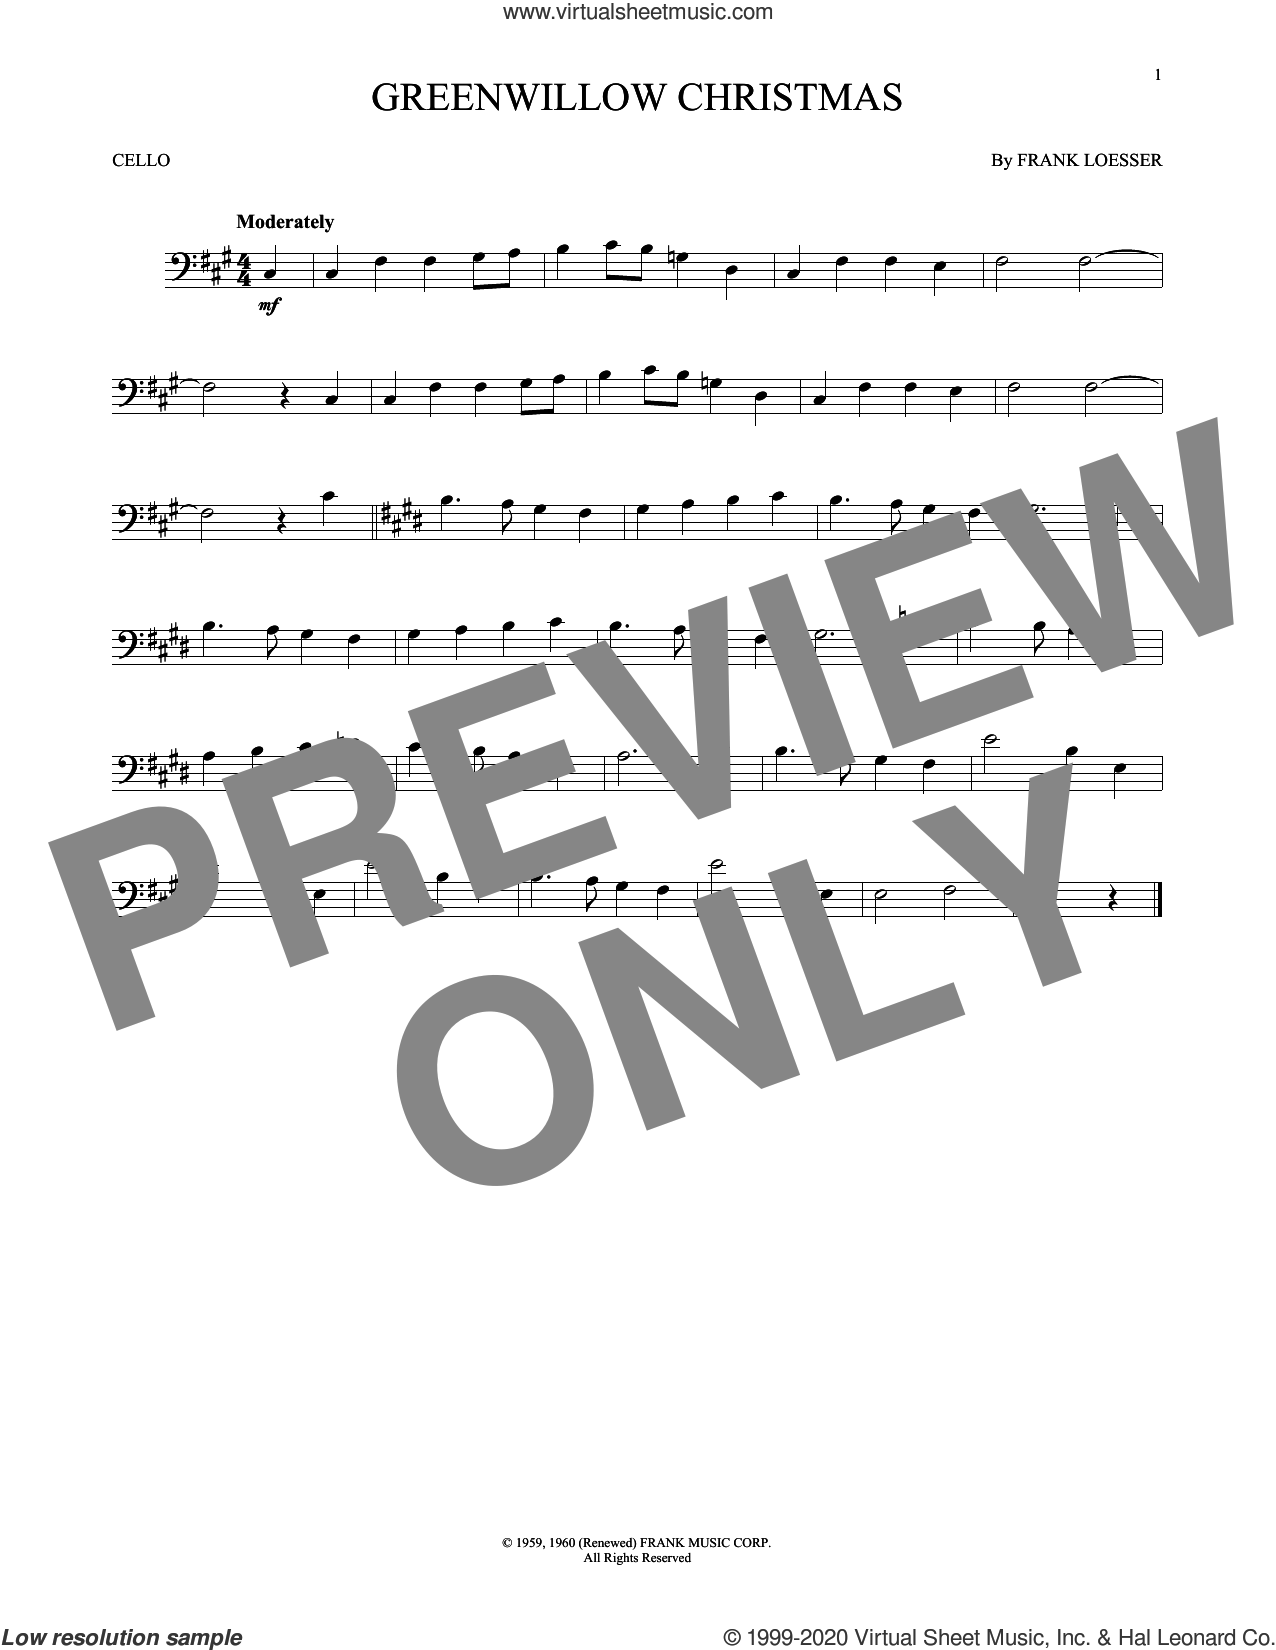 Greenwillow Christmas sheet music for cello solo by Frank Loesser, intermediate skill level